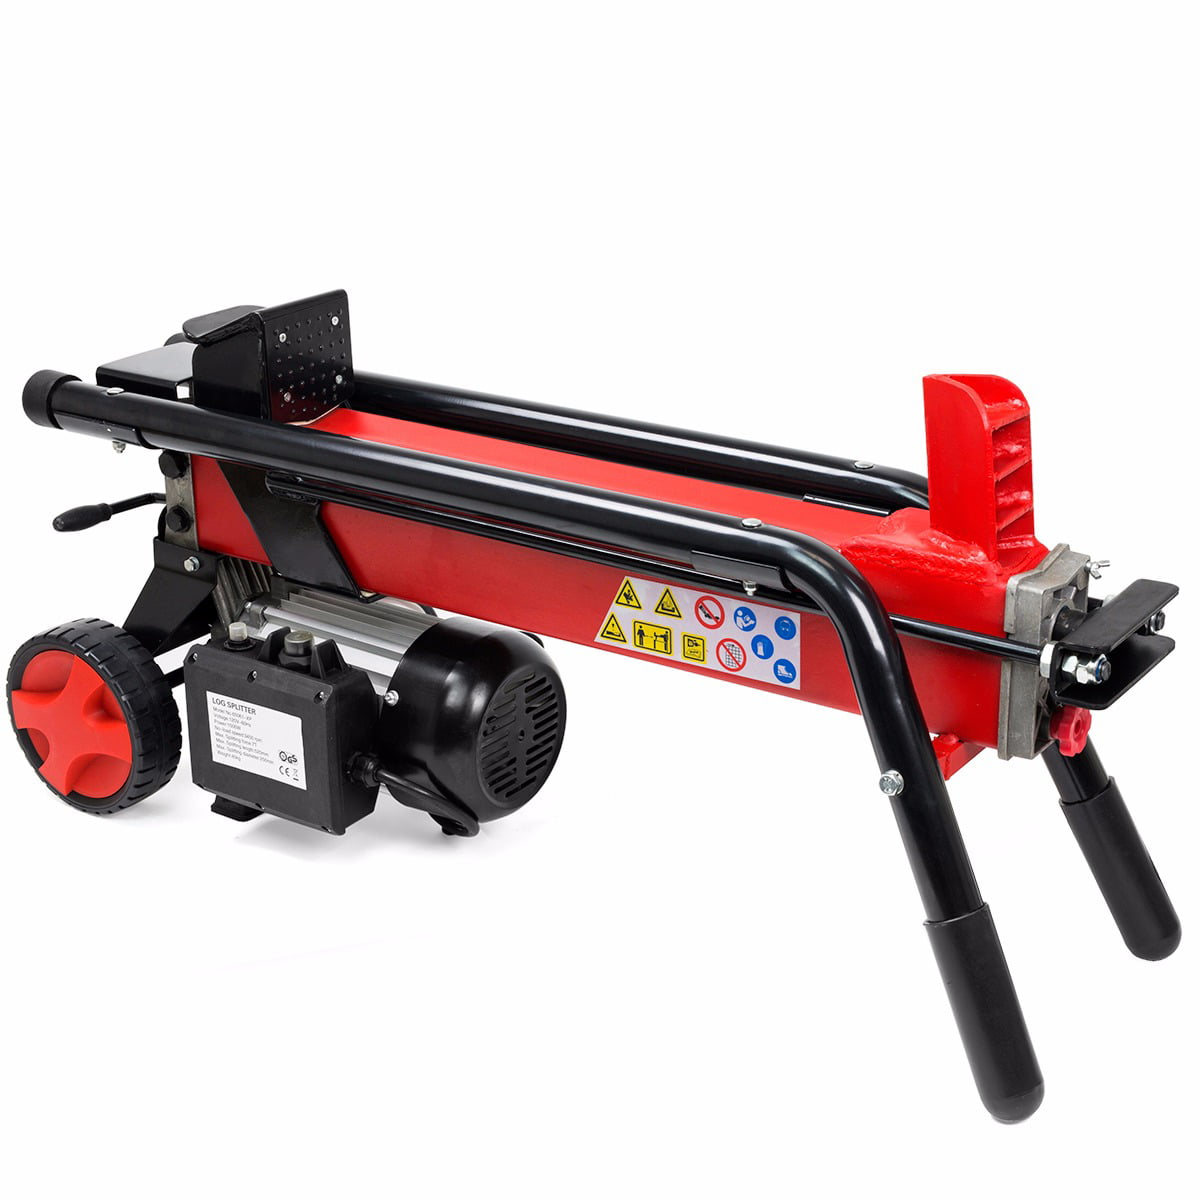 "7Ton Electrical Hydraulic Log Splitter Cutter 7"" Mobile Wheels, Red by Log Splitters"